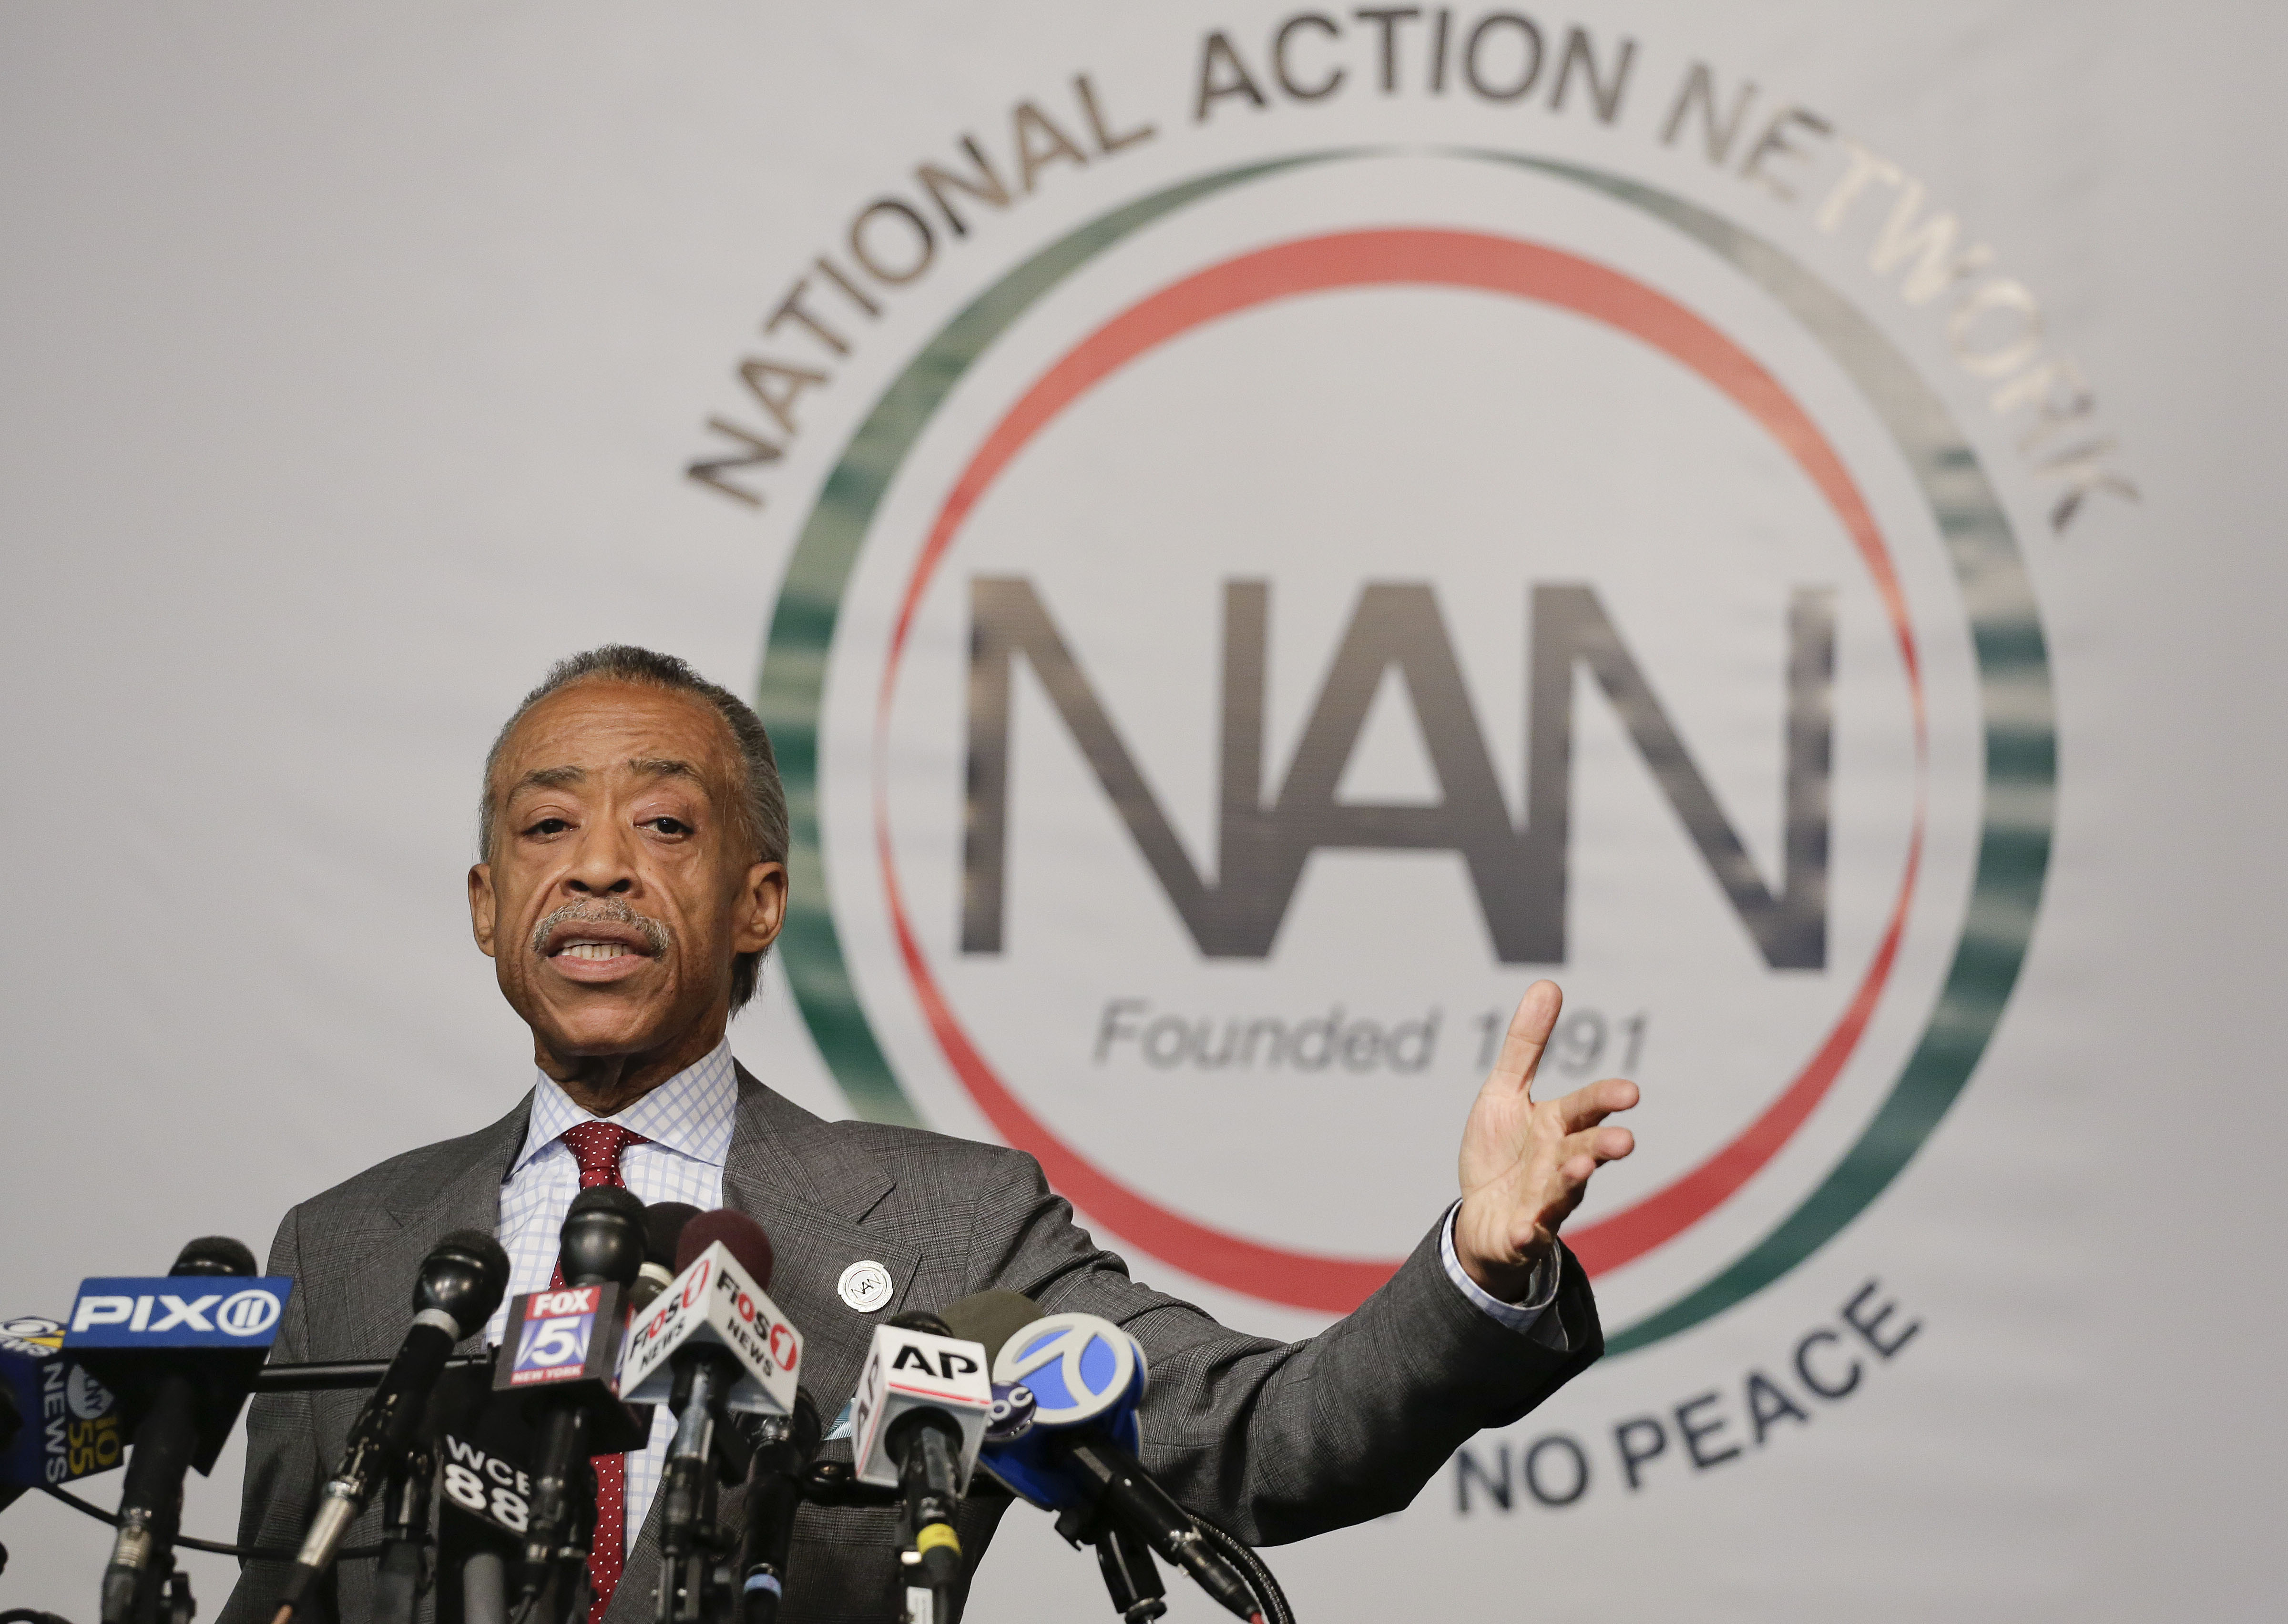 The Rev. Al Sharpton speaks during a news conference, Wednesday, Nov. 19, 2014, in New York.... [+] Sharpton spoke about his plans for thepending grand jury decisions in the deaths of Michael Brown in a St. Louis suburb and Eric Garner in New York and also addressed tax allegations in a New York Times story. (AP Photo/Julie Jacobson)